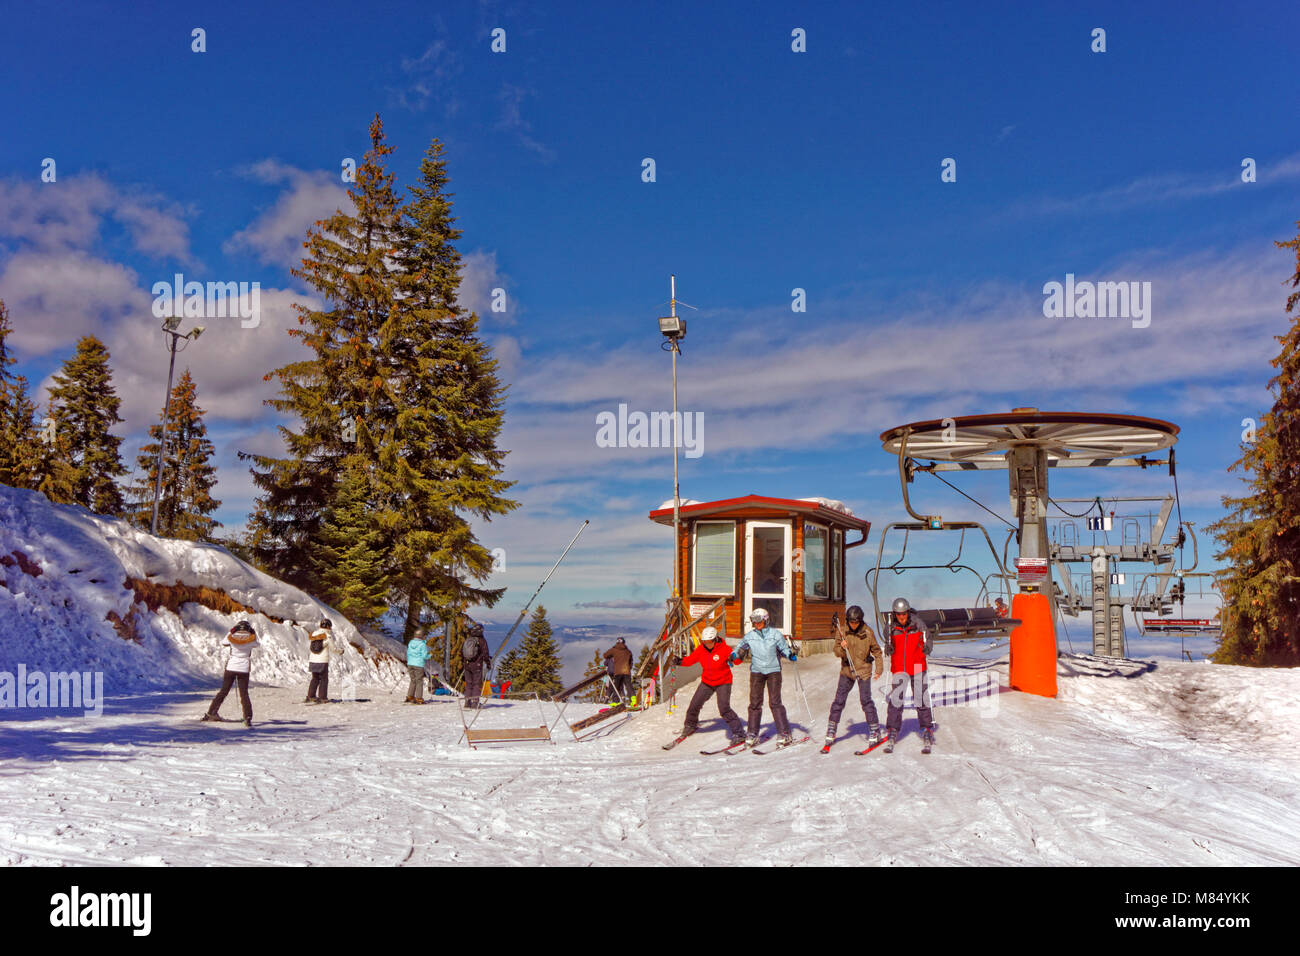 Martinovi Baraki chairlift summit at Borovets Ski resort, Targovishte, Bulgaria. - Stock Image